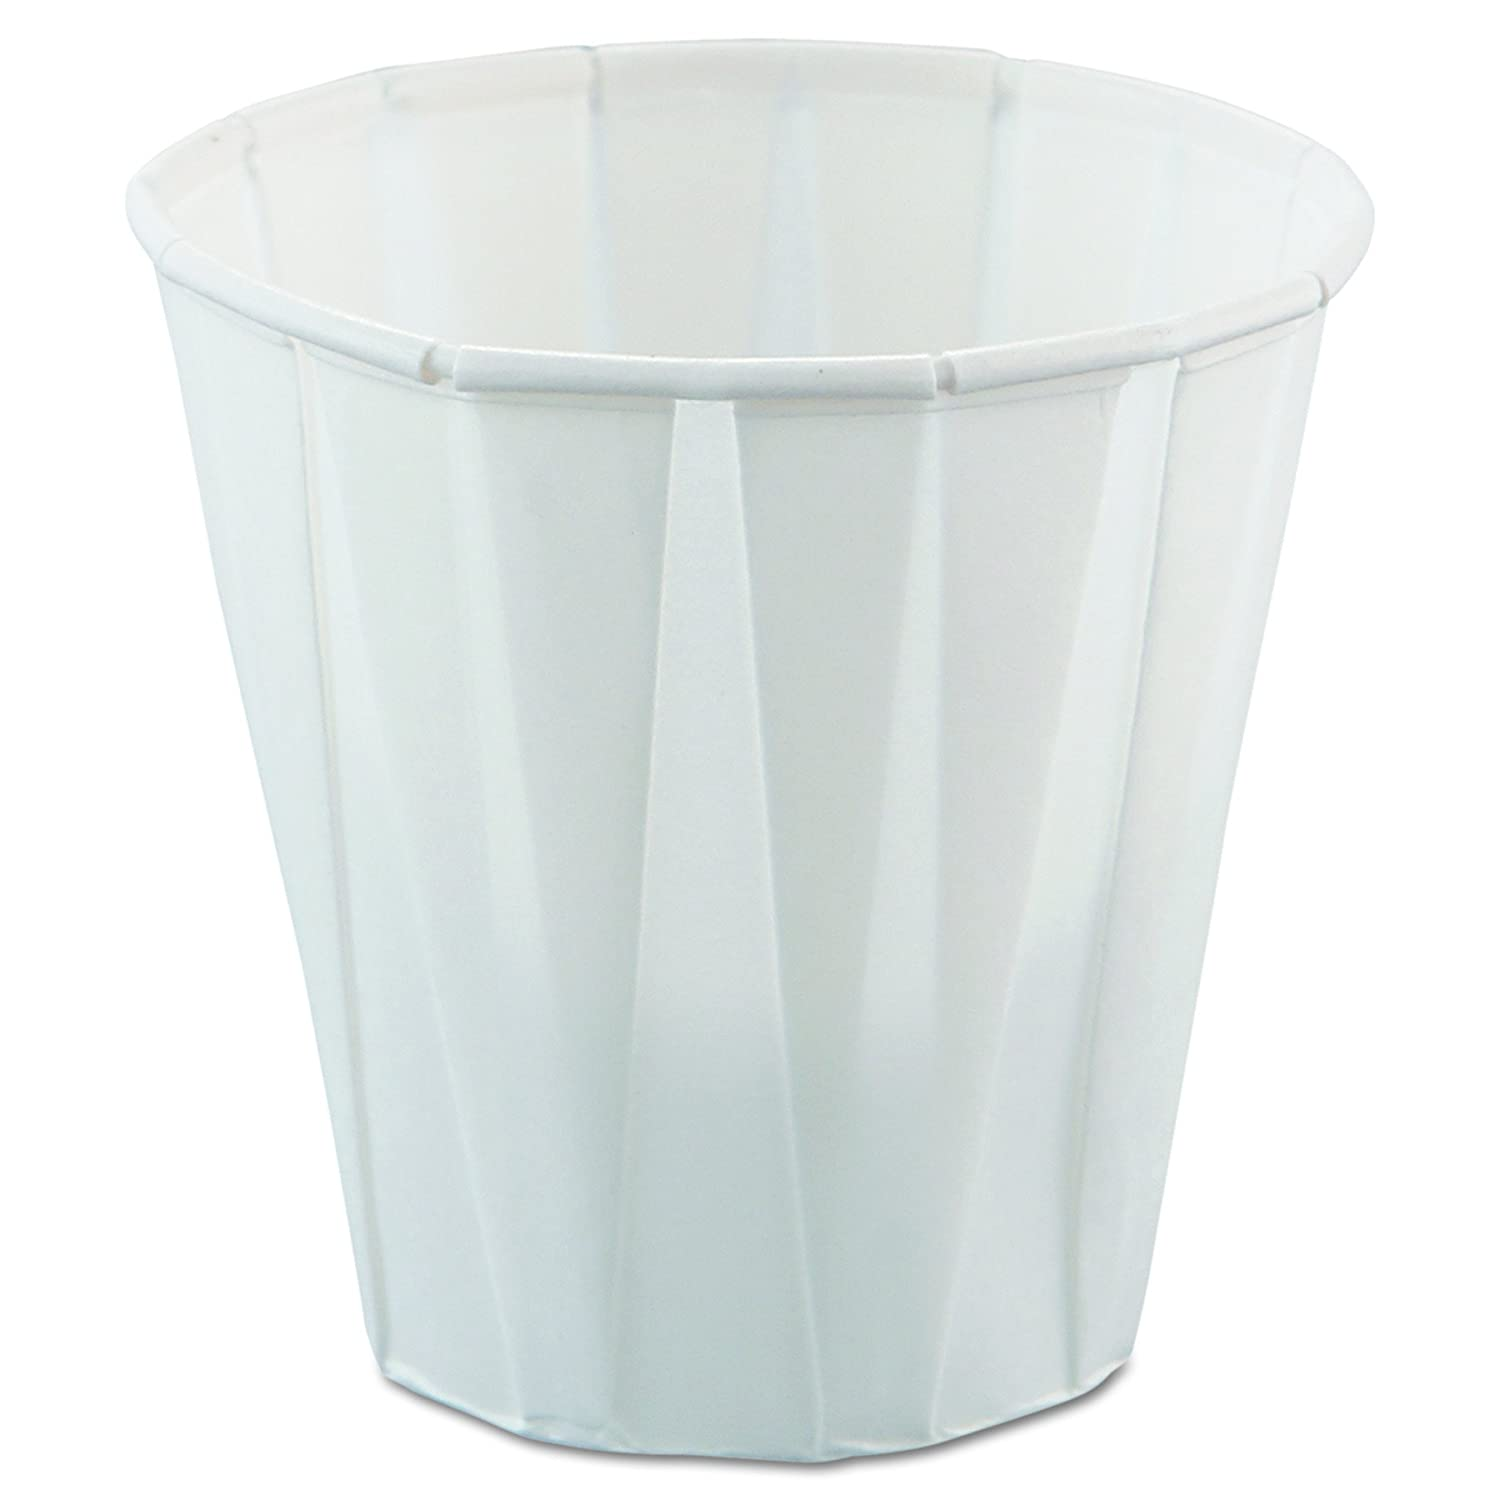 Solo 450-2050 3.5 oz Treated Paper 5000 trend Nashville-Davidson Mall rank of Case Portion Cup